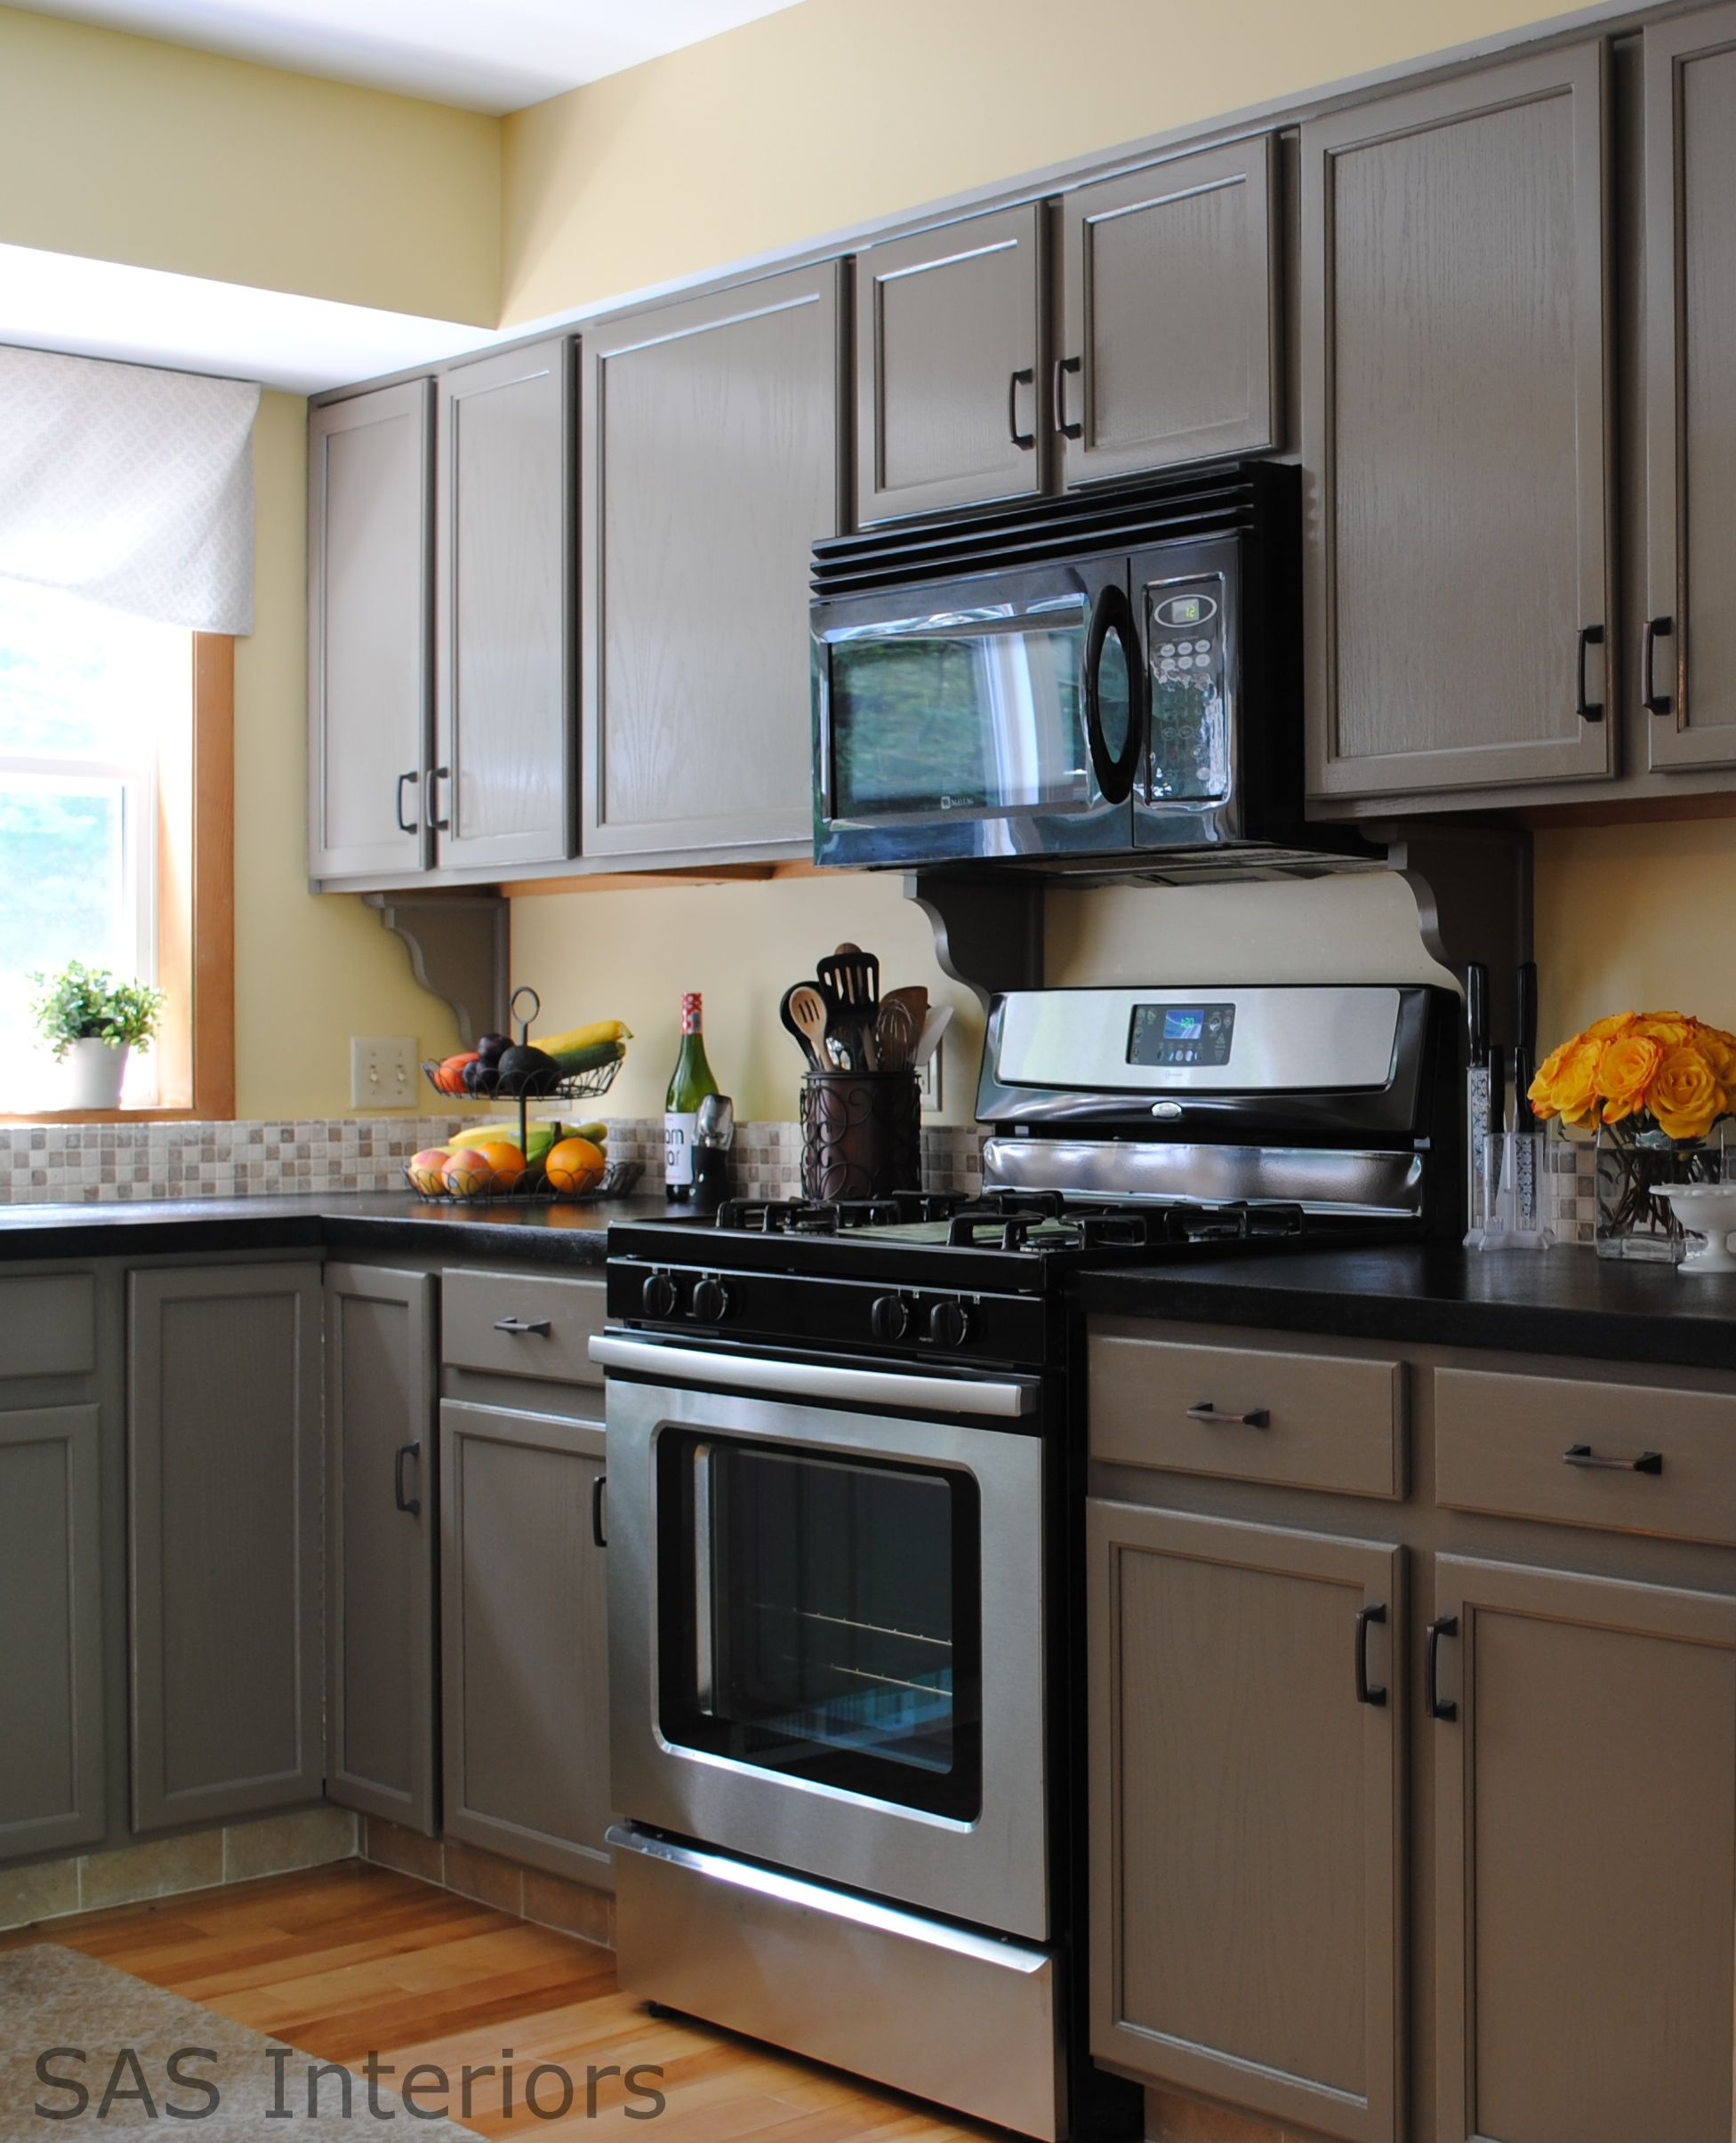 Dark Beige Kitchen Cabinets: A Complete Do-it-yourself Kitchen Makeover Using Benjamin